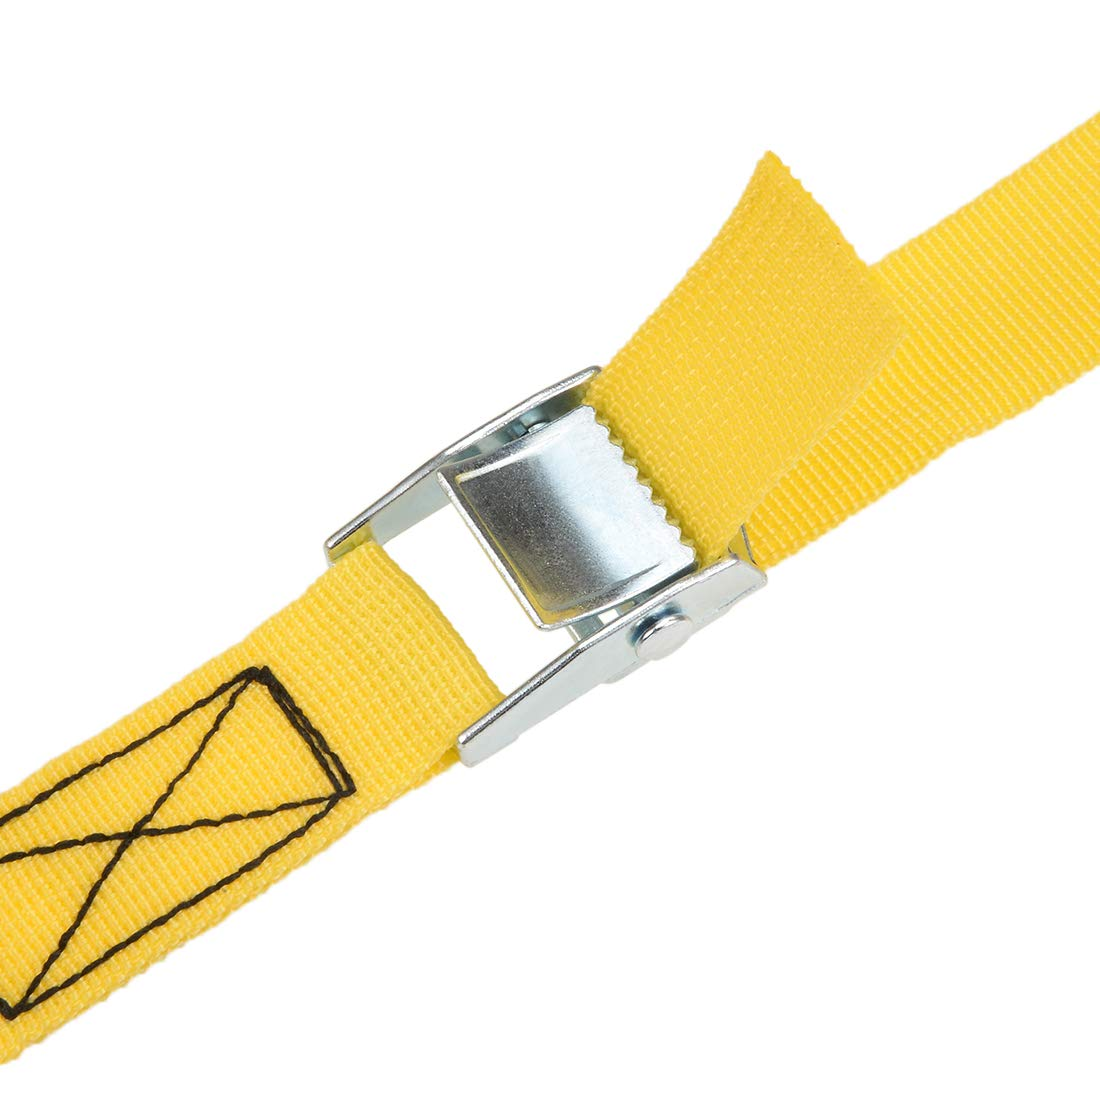 4Pcs Yellow uxcell 4M x 25mm Lashing Strap Cargo Tie Down Straps w Cam Lock Buckle 250Kg Work Load